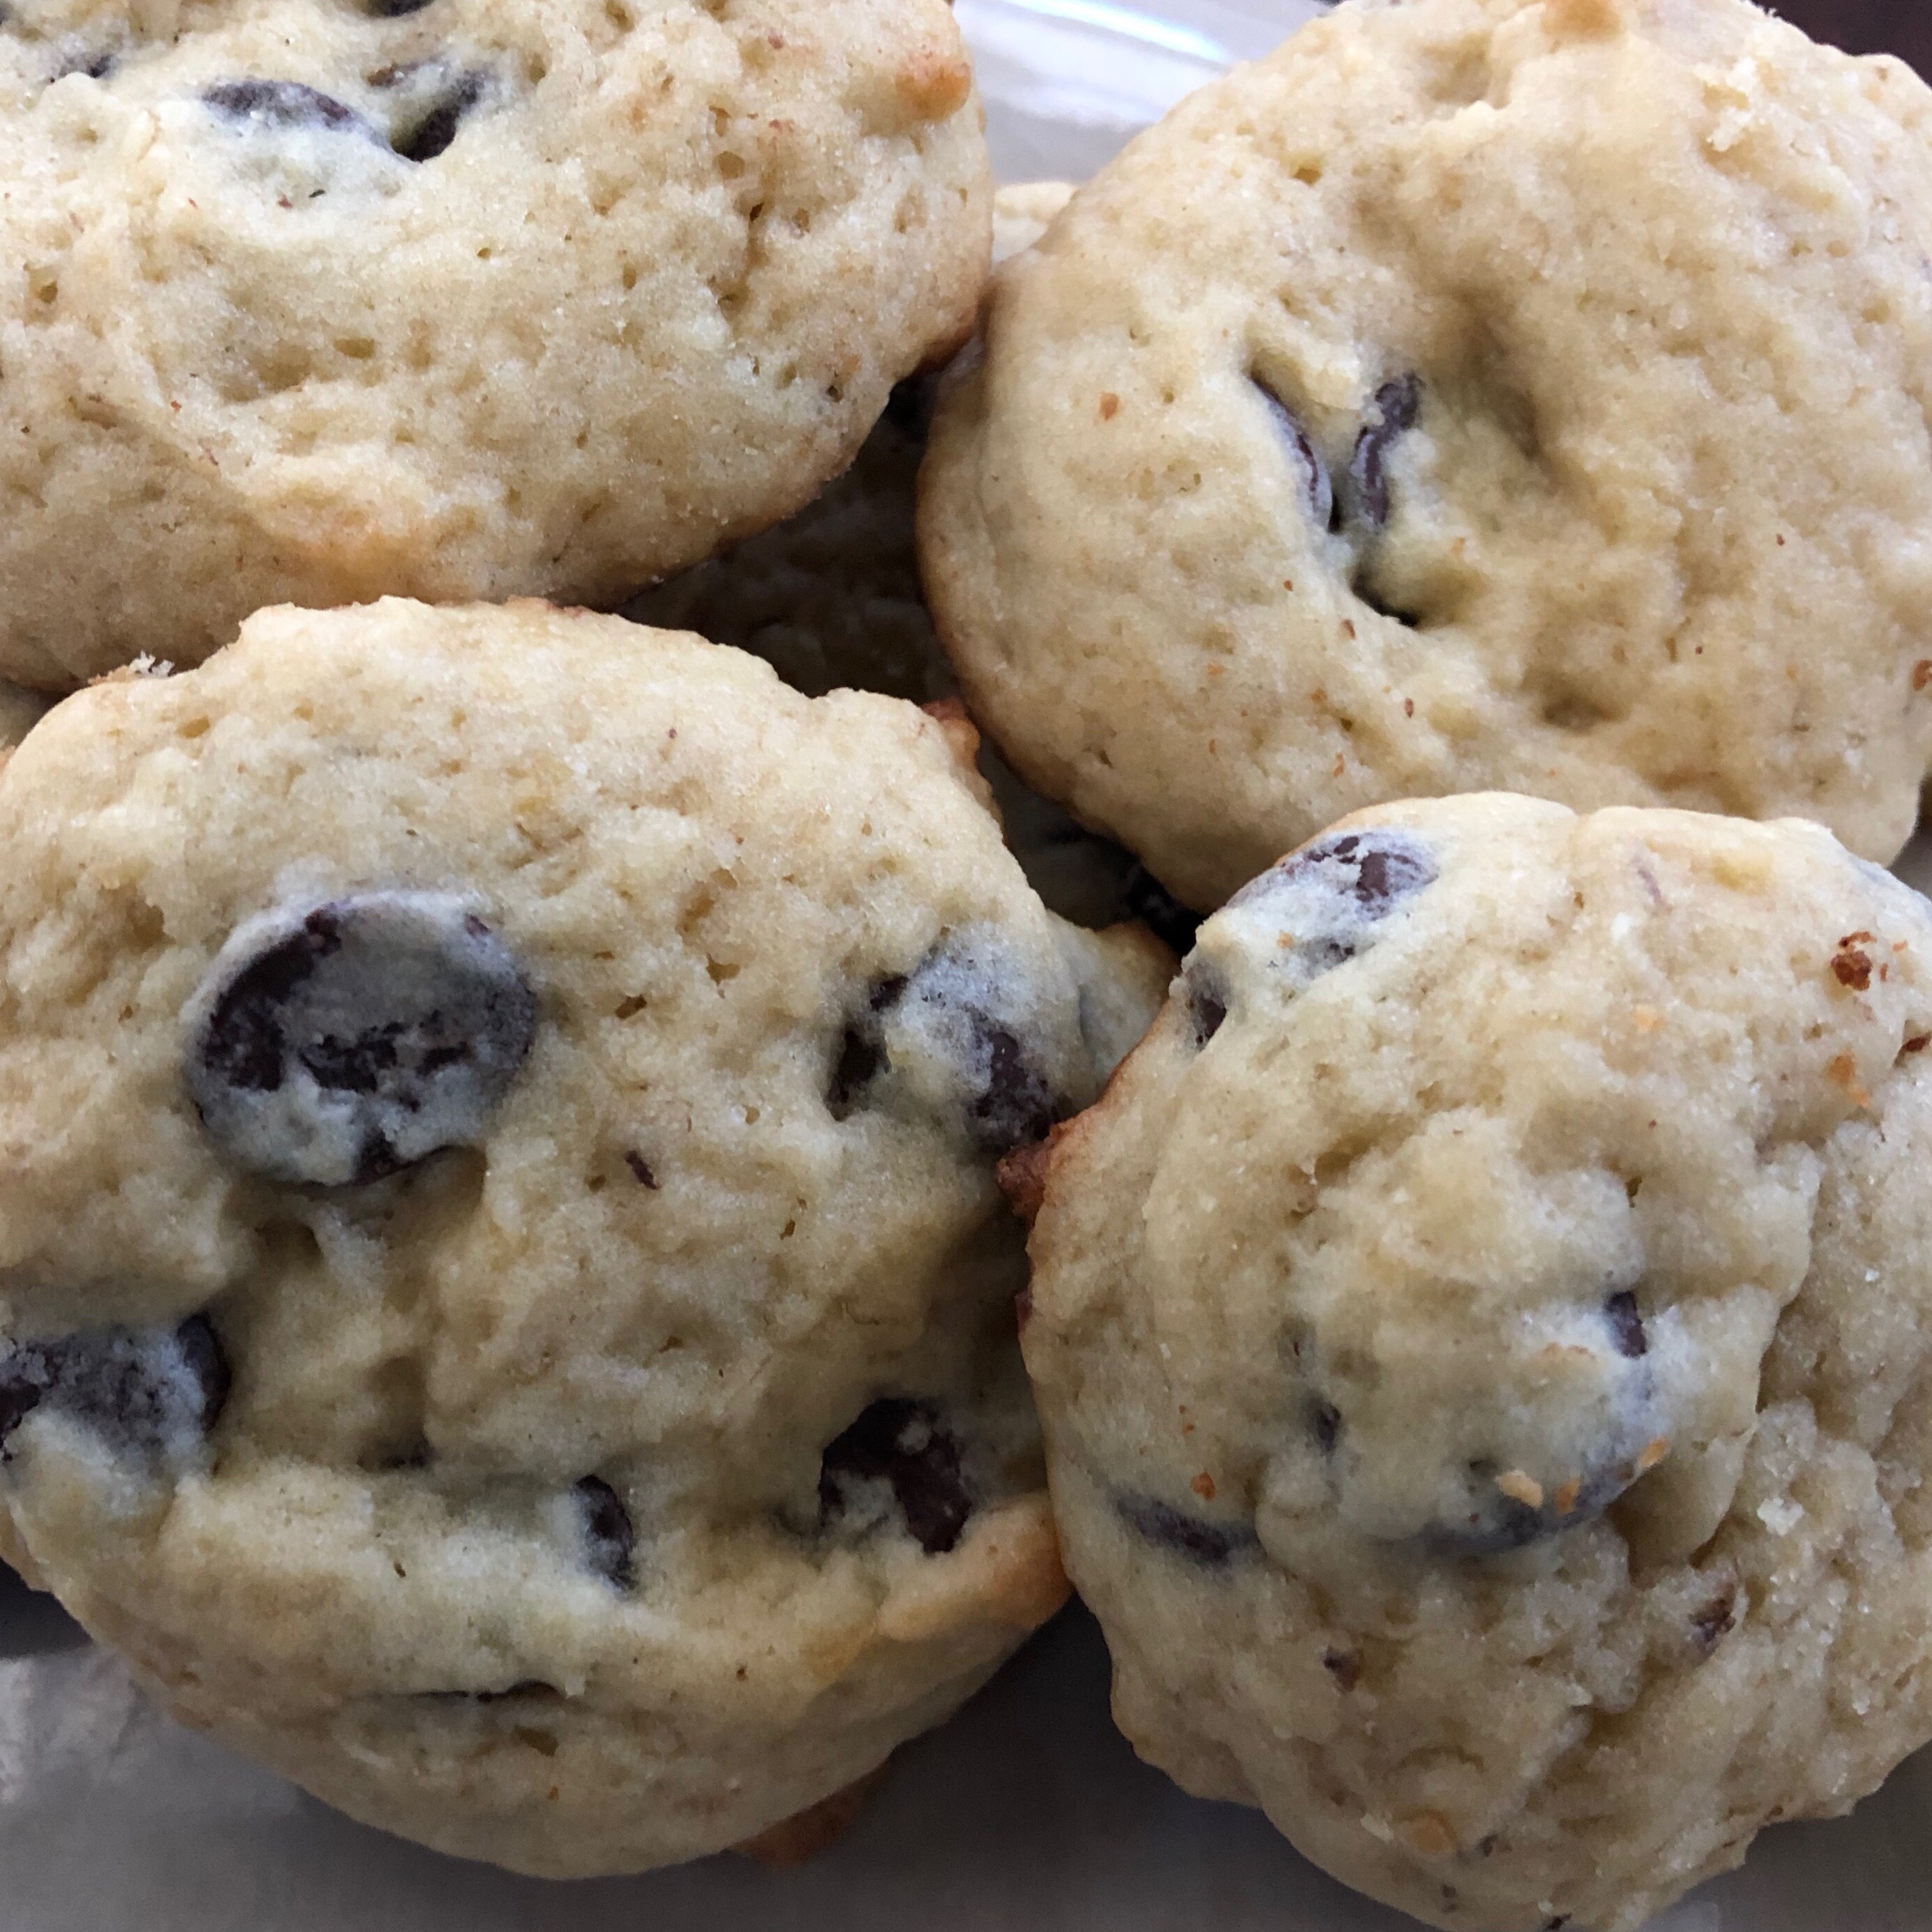 Cakey and light, these healthy-ish cookies are similar in texture tomuffin tops. An extra ¼ cup of flour and 1 teaspoon less baking powder are the only two adjustments needed to get these goodies ready for altitude.